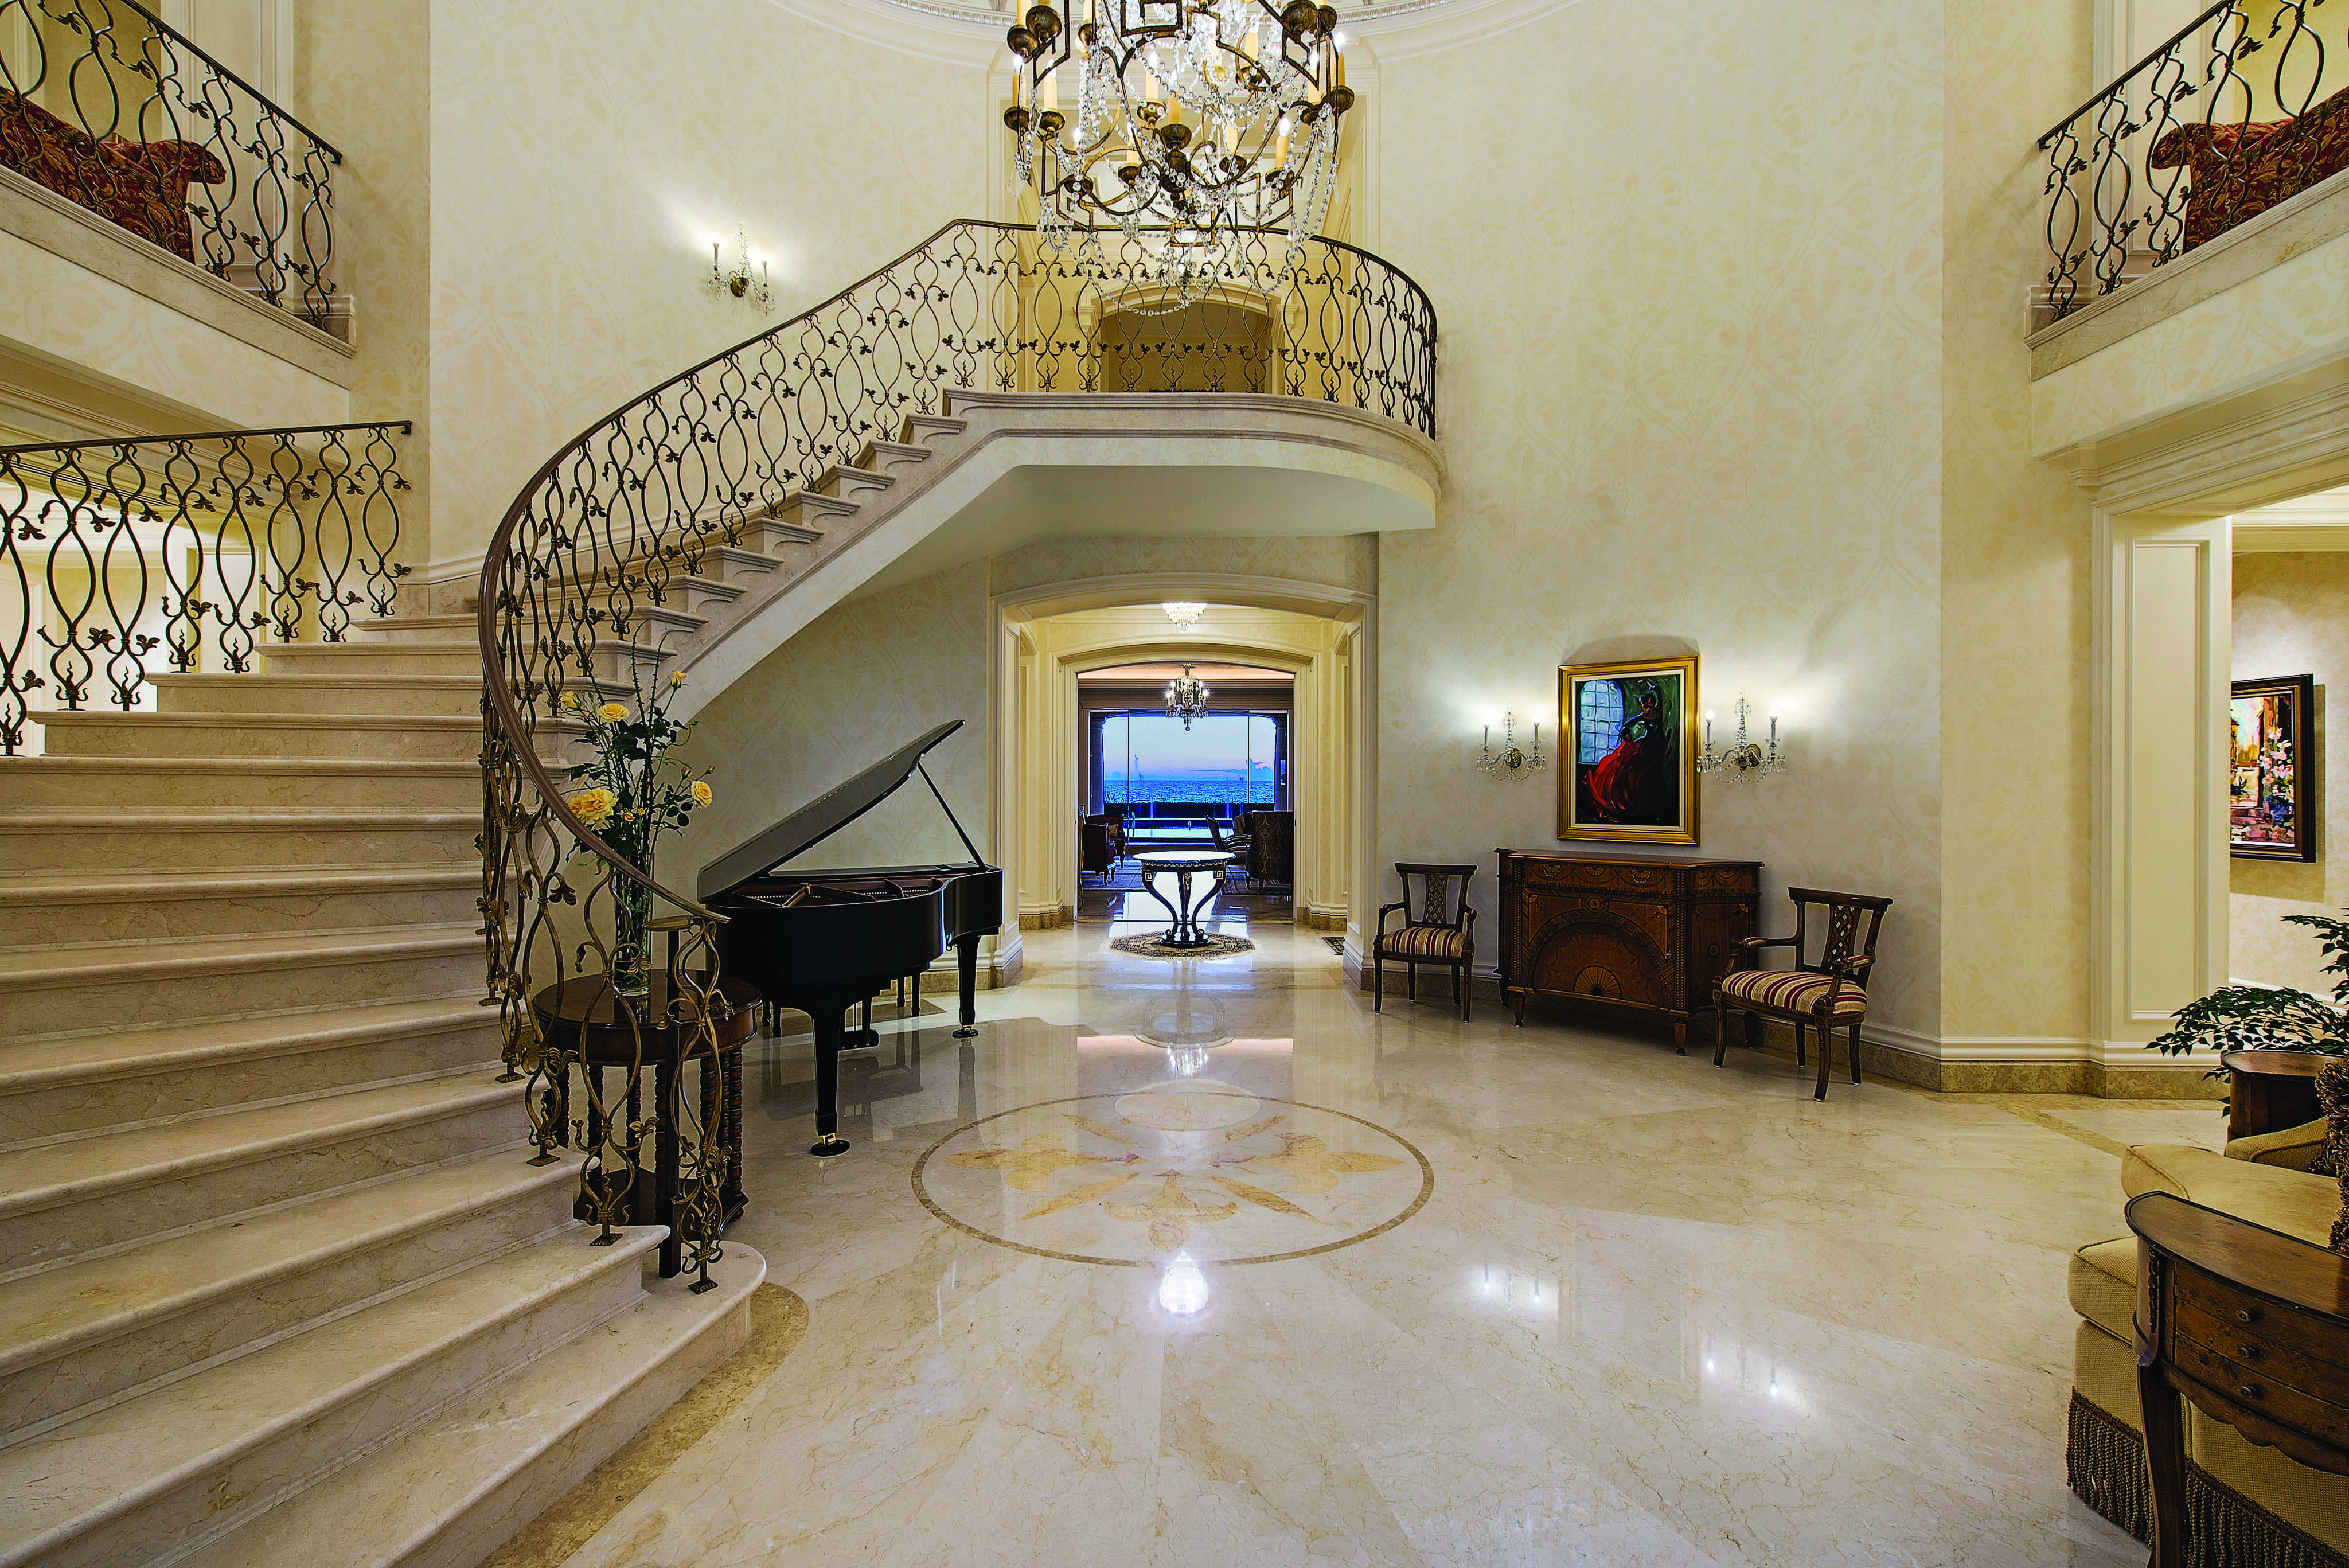 Pristine Marble Floors And An Elegantly Curved Staircase (Photo 1 of 13)